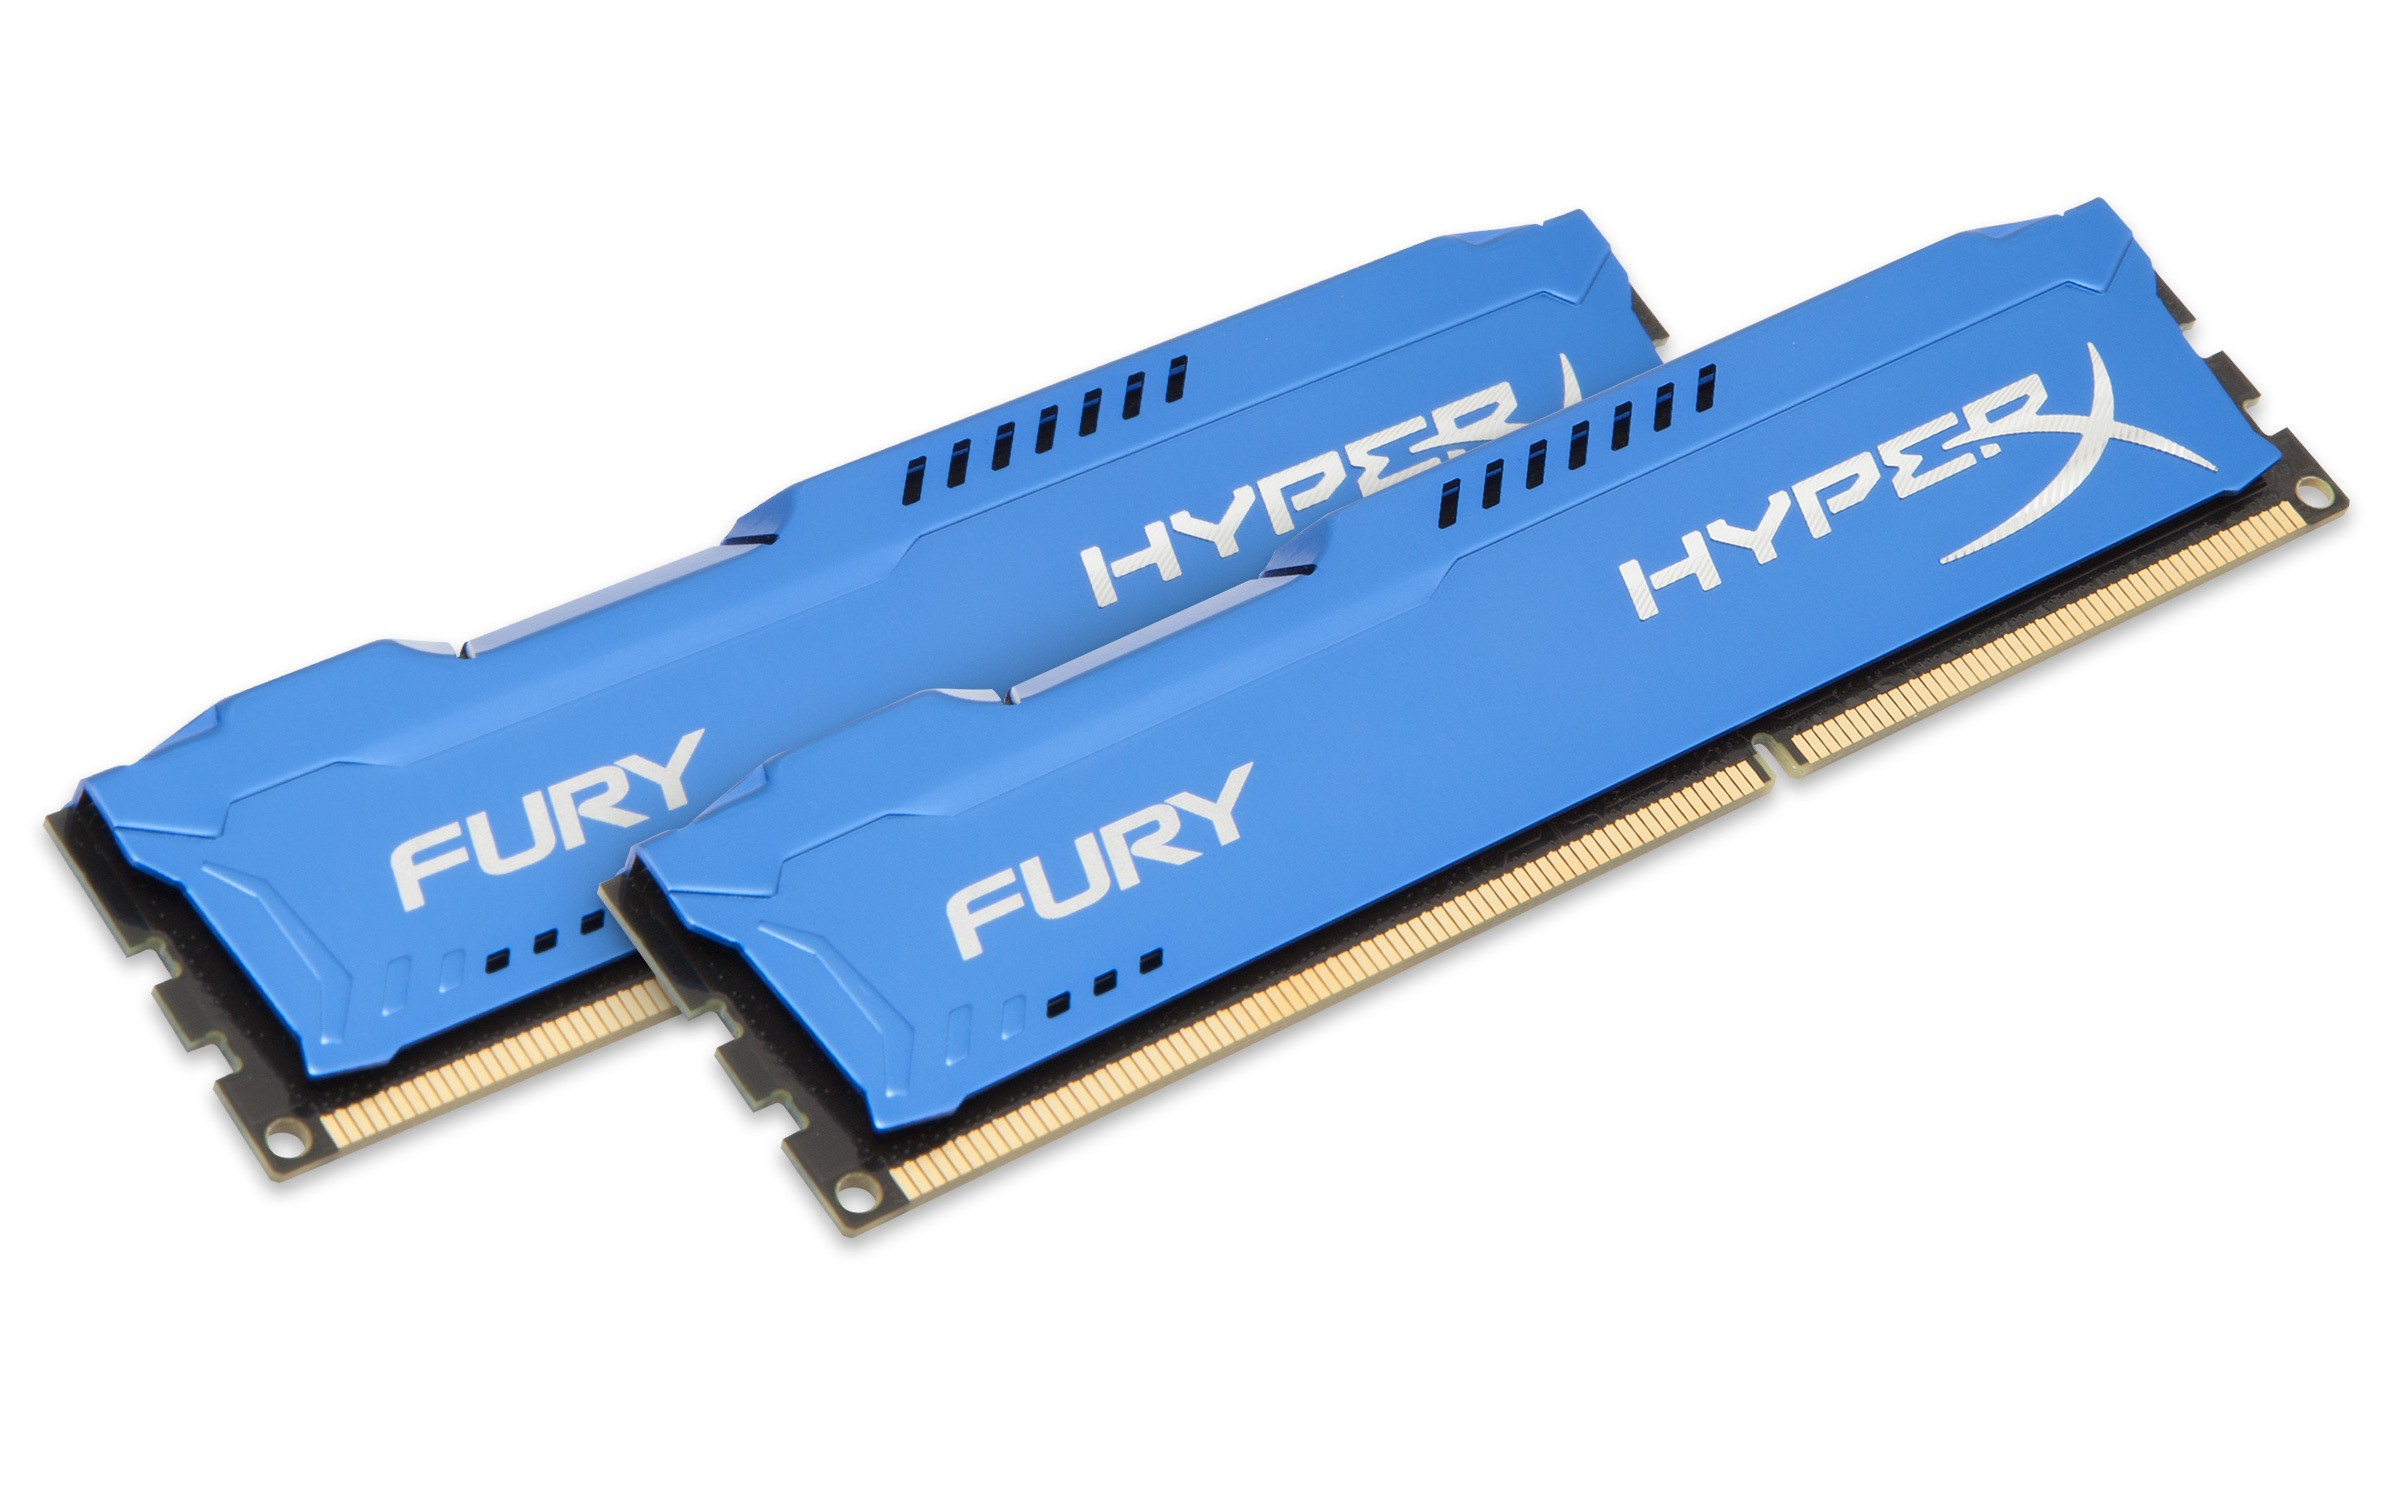 price of 16GB 1866MHz DDR3 CL10 DIMM (Kit of 2) HyperX FURY Blue on ShopHub | ecommerce, price check, start a business, sell online